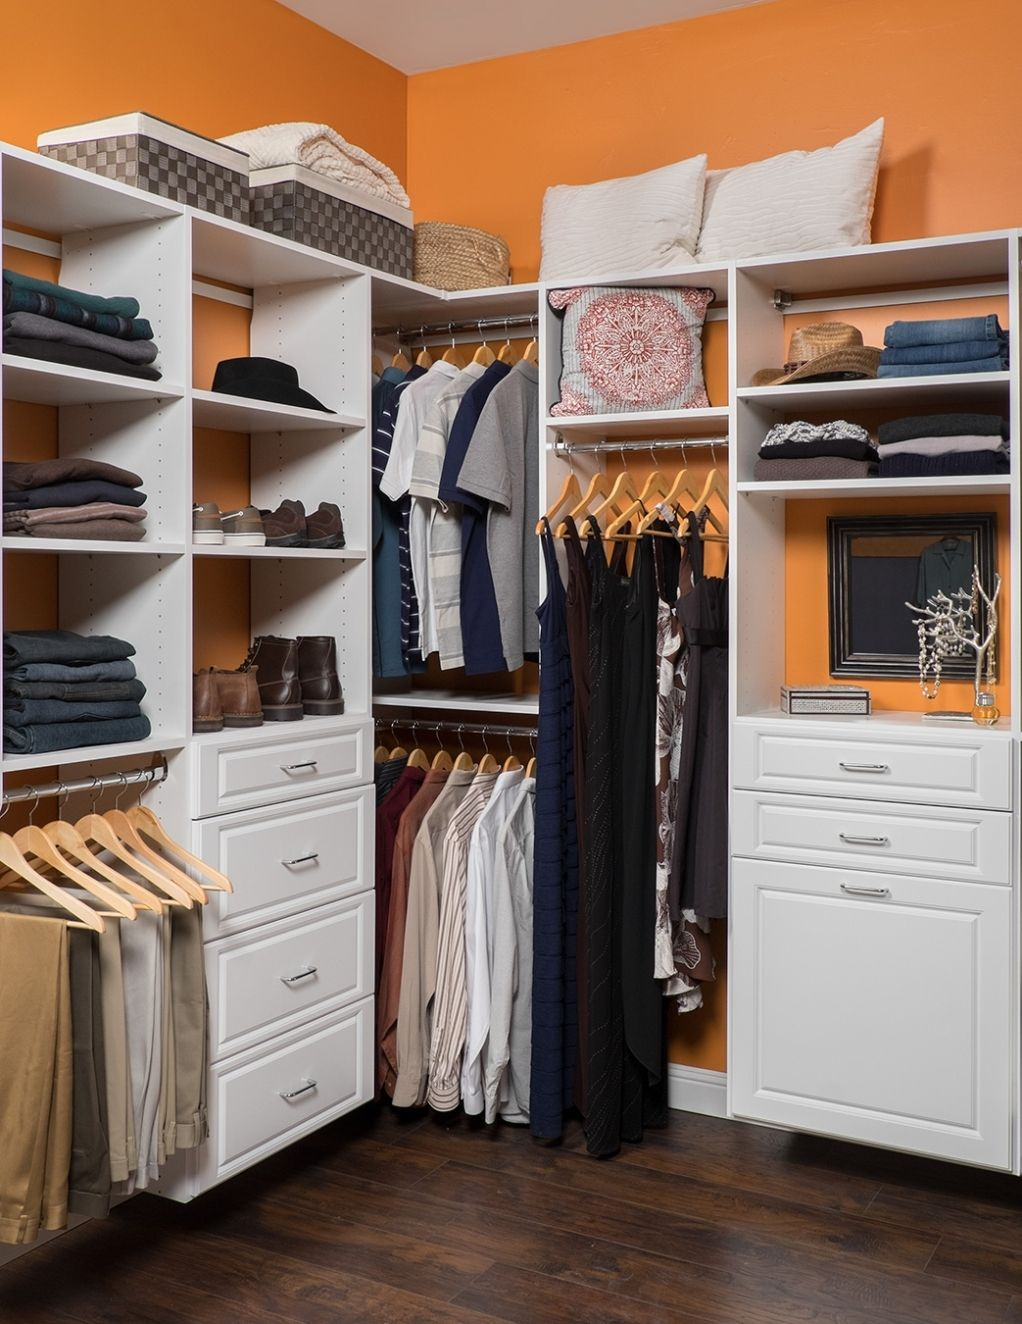 Superieur Long Island Closet Design   Interior Paint Color Ideas Check More At Http://